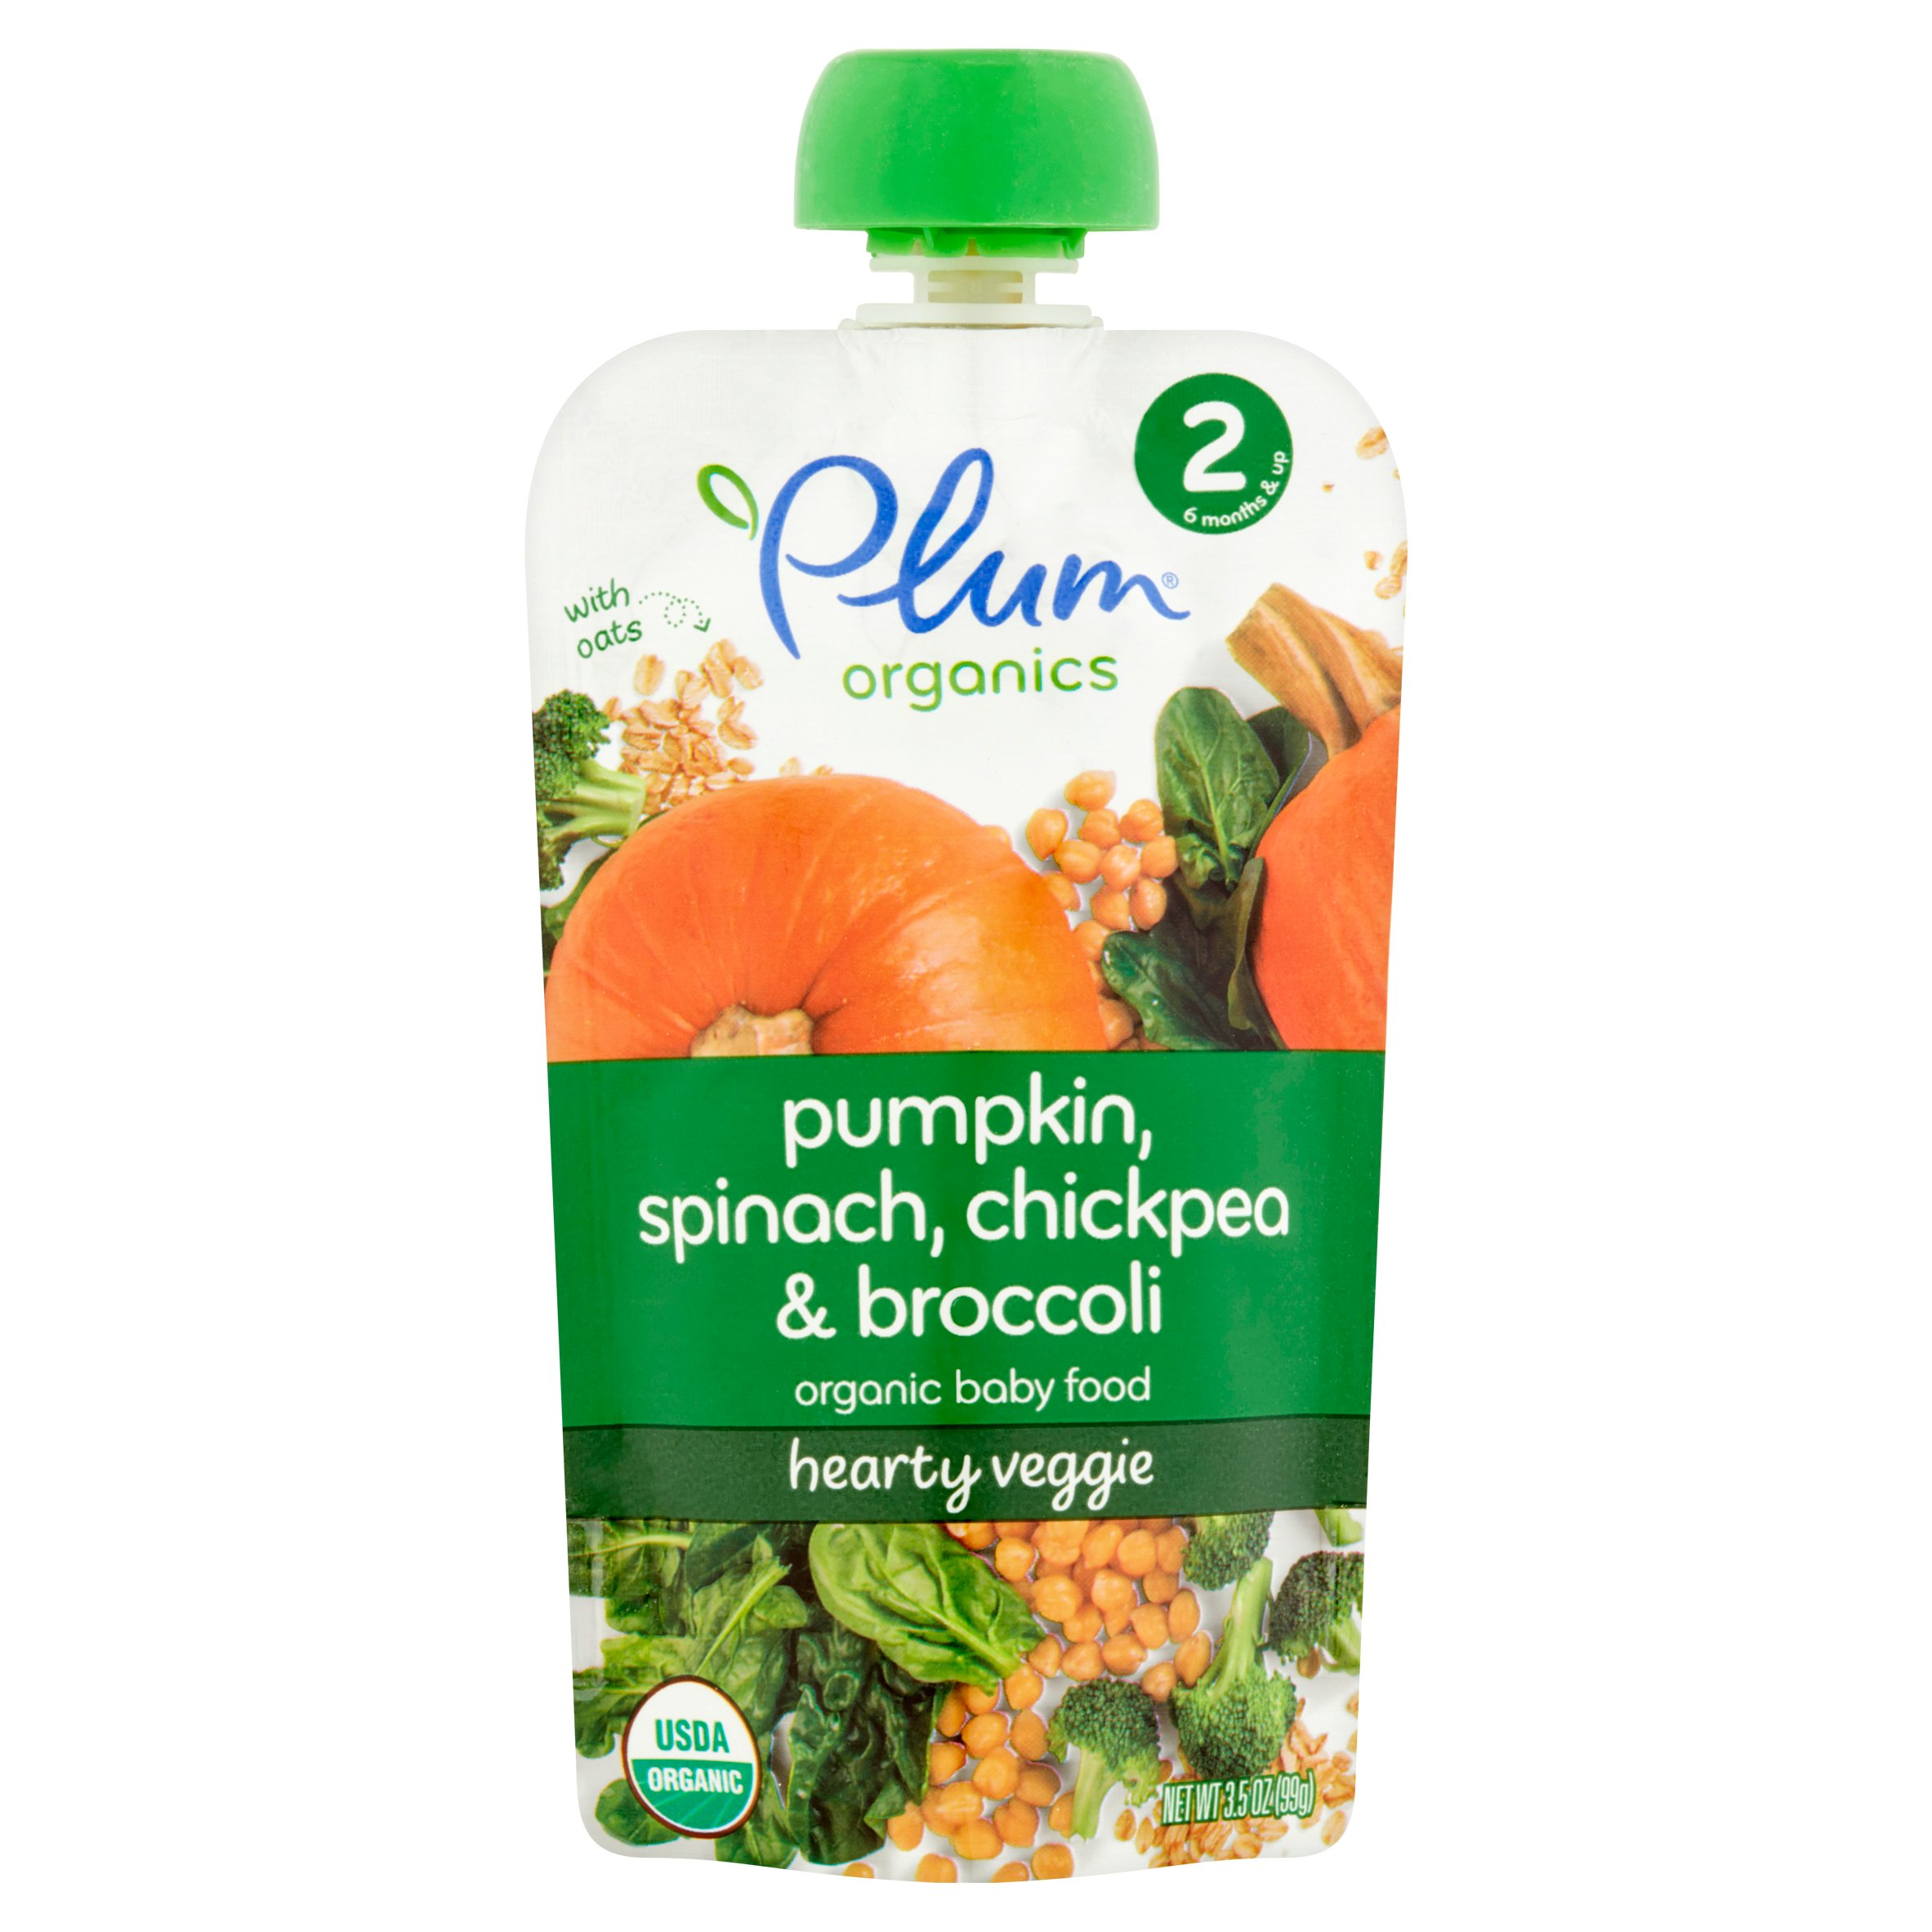 Plum Organics Spinach, Pumpkin & Chickpea Stage 2 Organic Baby Food, 3.5 oz, 6 count